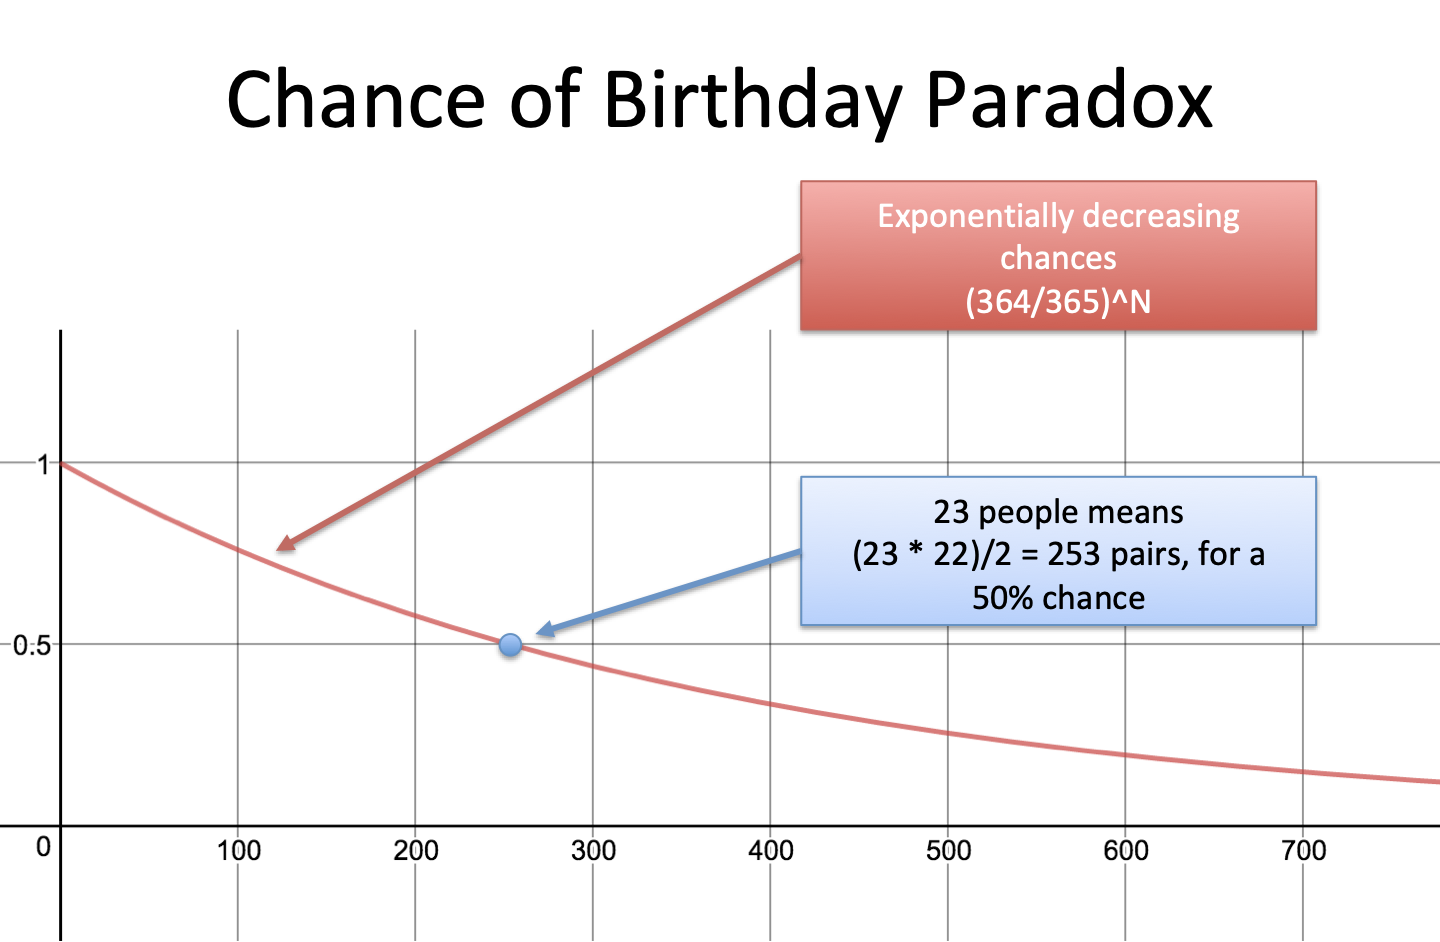 birthday paradox chart exponential chances